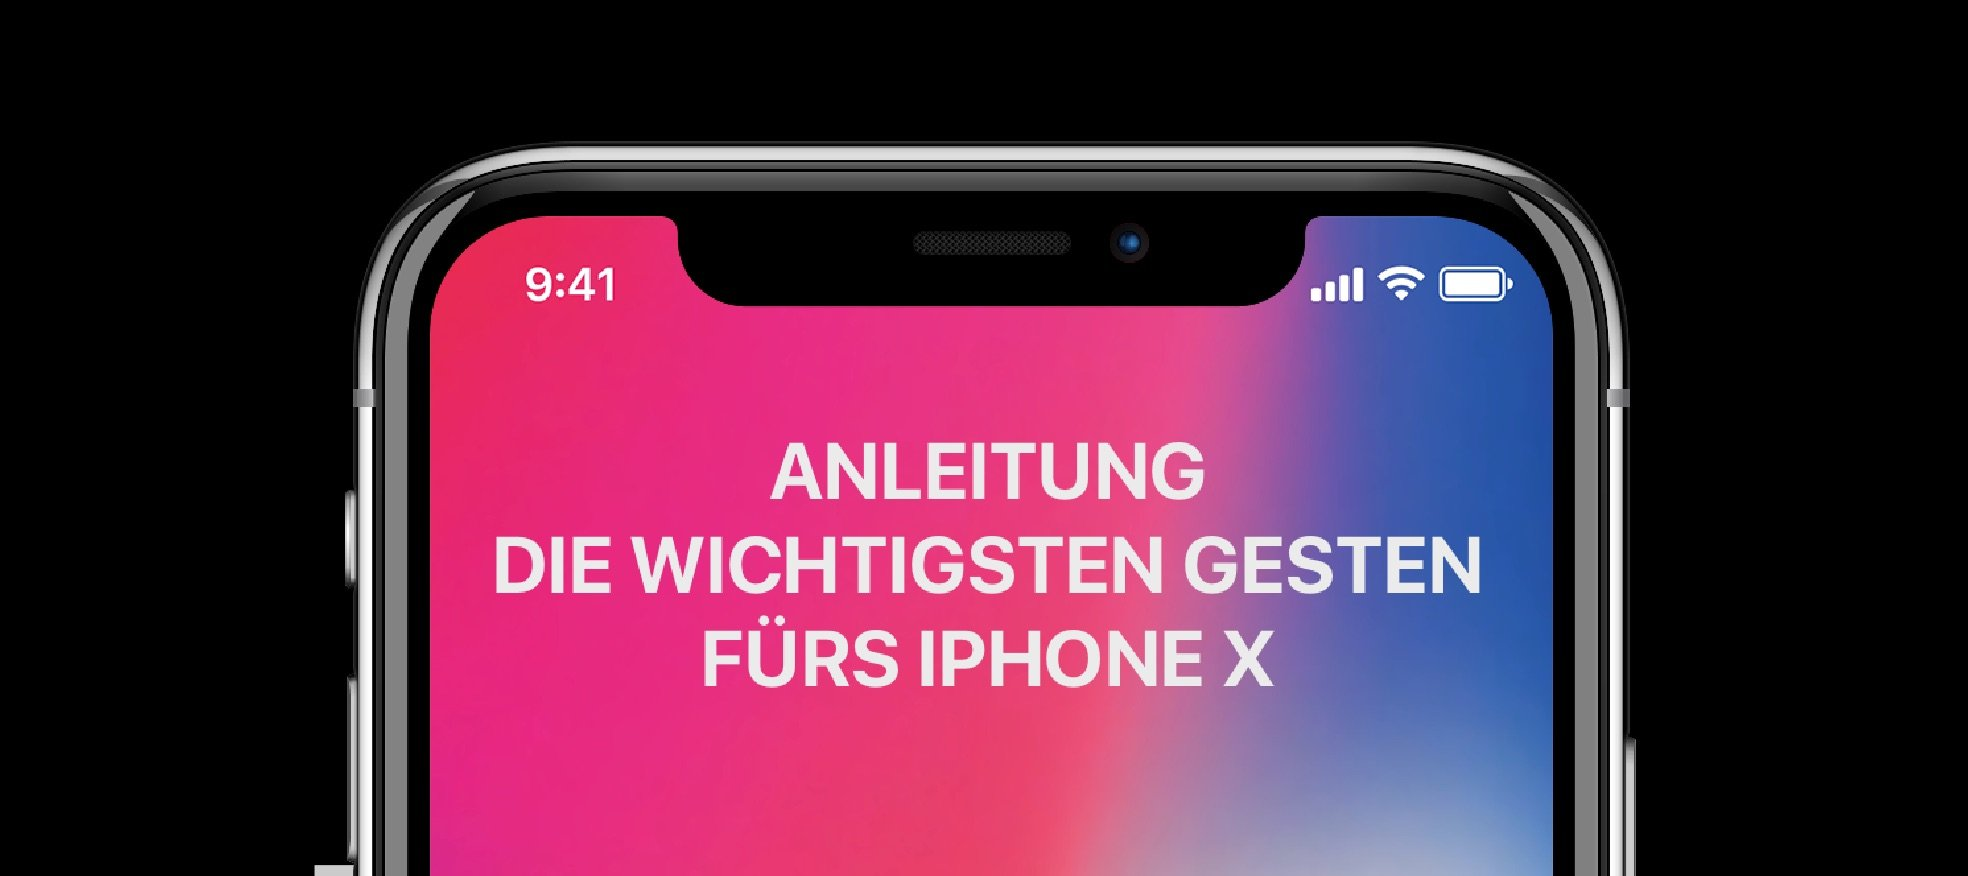 iphone x anleitung die wichtigsten touch gesten. Black Bedroom Furniture Sets. Home Design Ideas